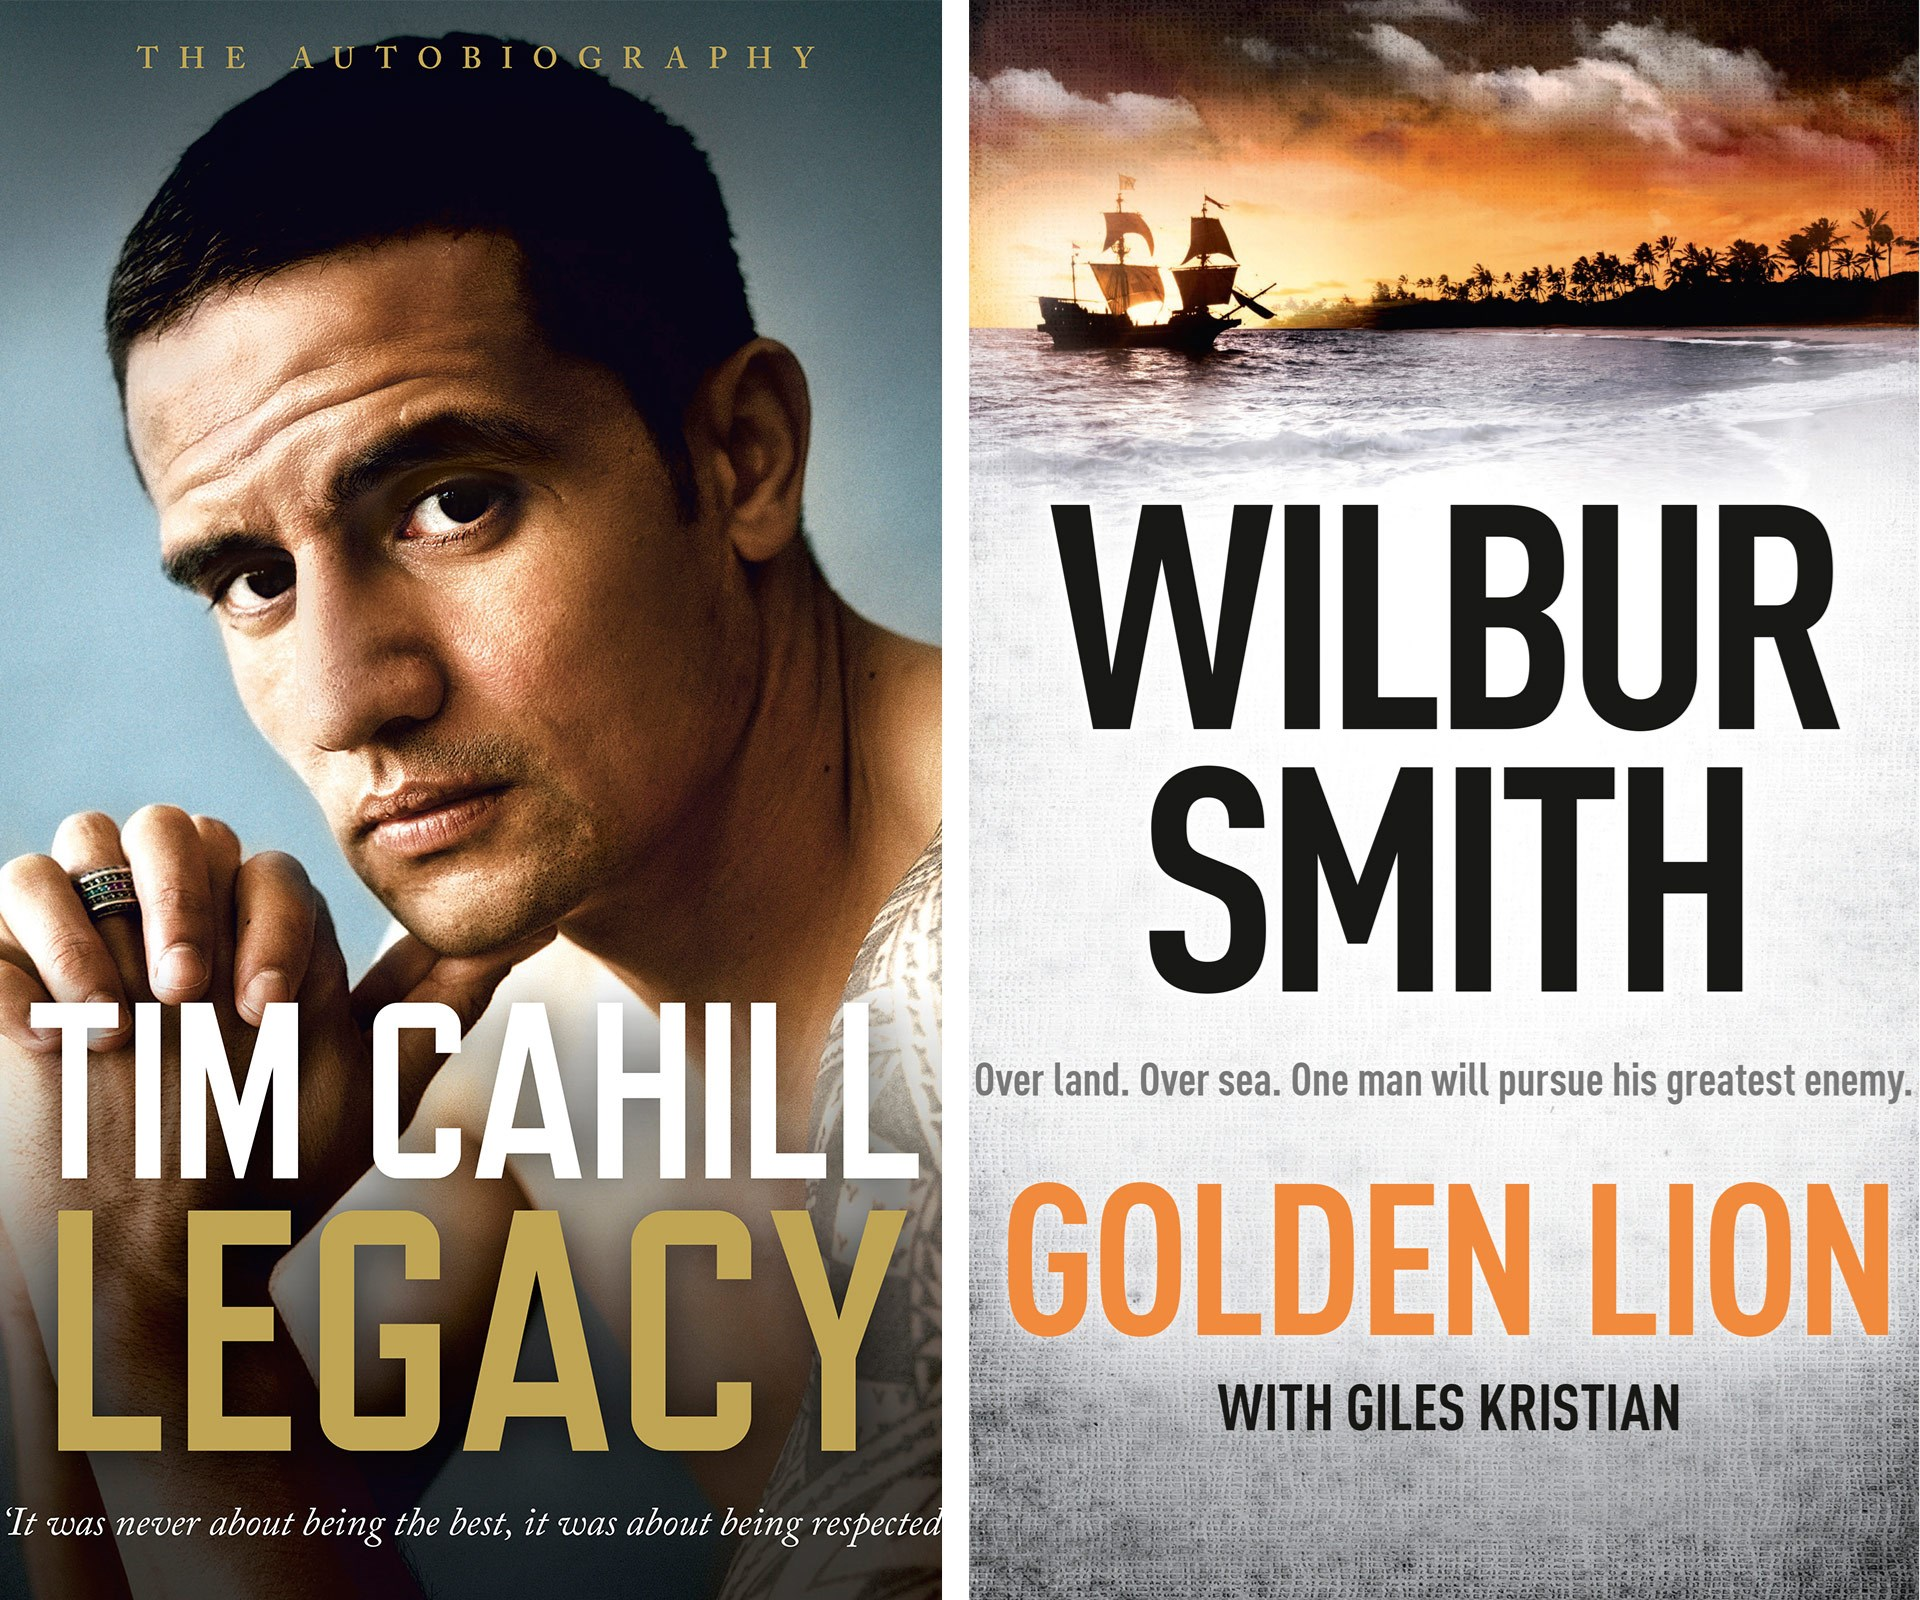 You'll be kicking goals with your dad if you get him Tim Cahill's autobiography or Wilbur Smith's latest adventurous novel, *Golden Lion*.